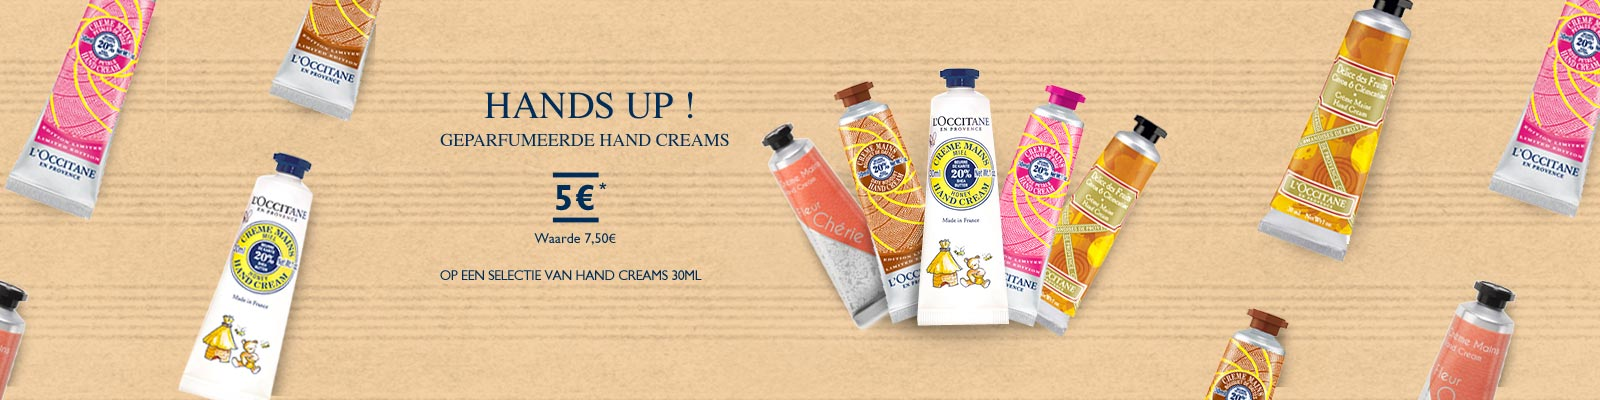 Handcream  5 Euros - L'Occitane